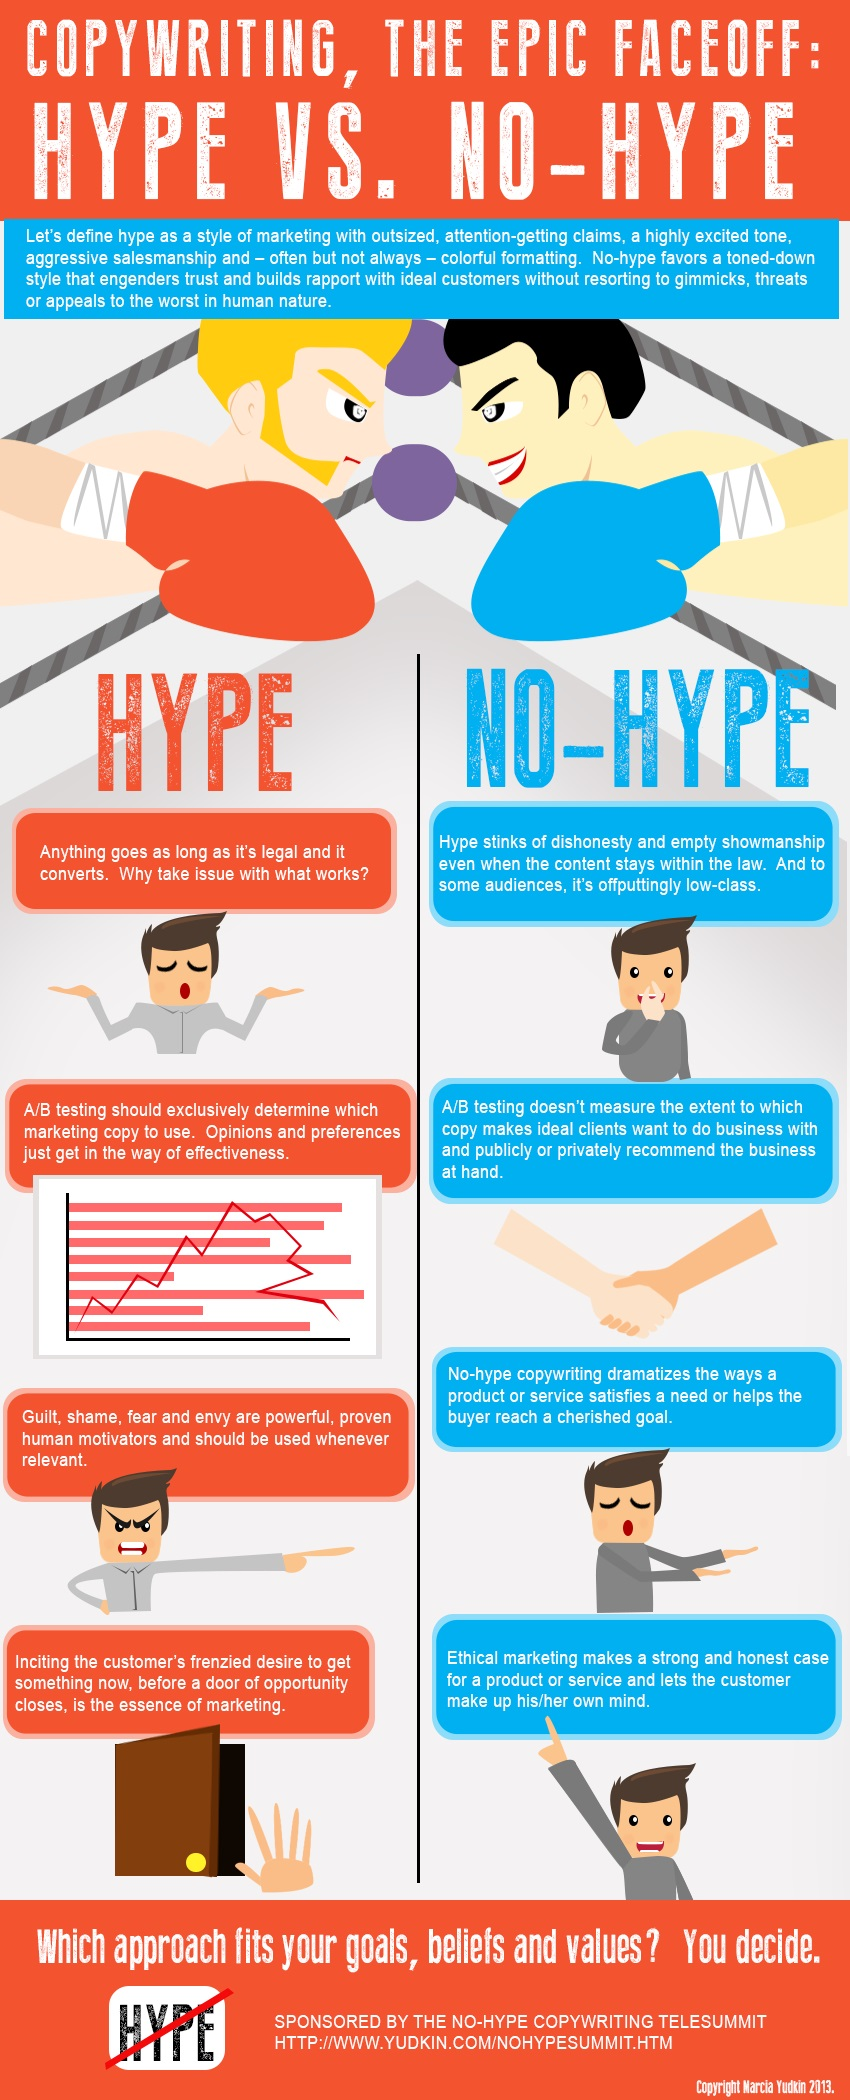 copywriting - hype or no hype infographic